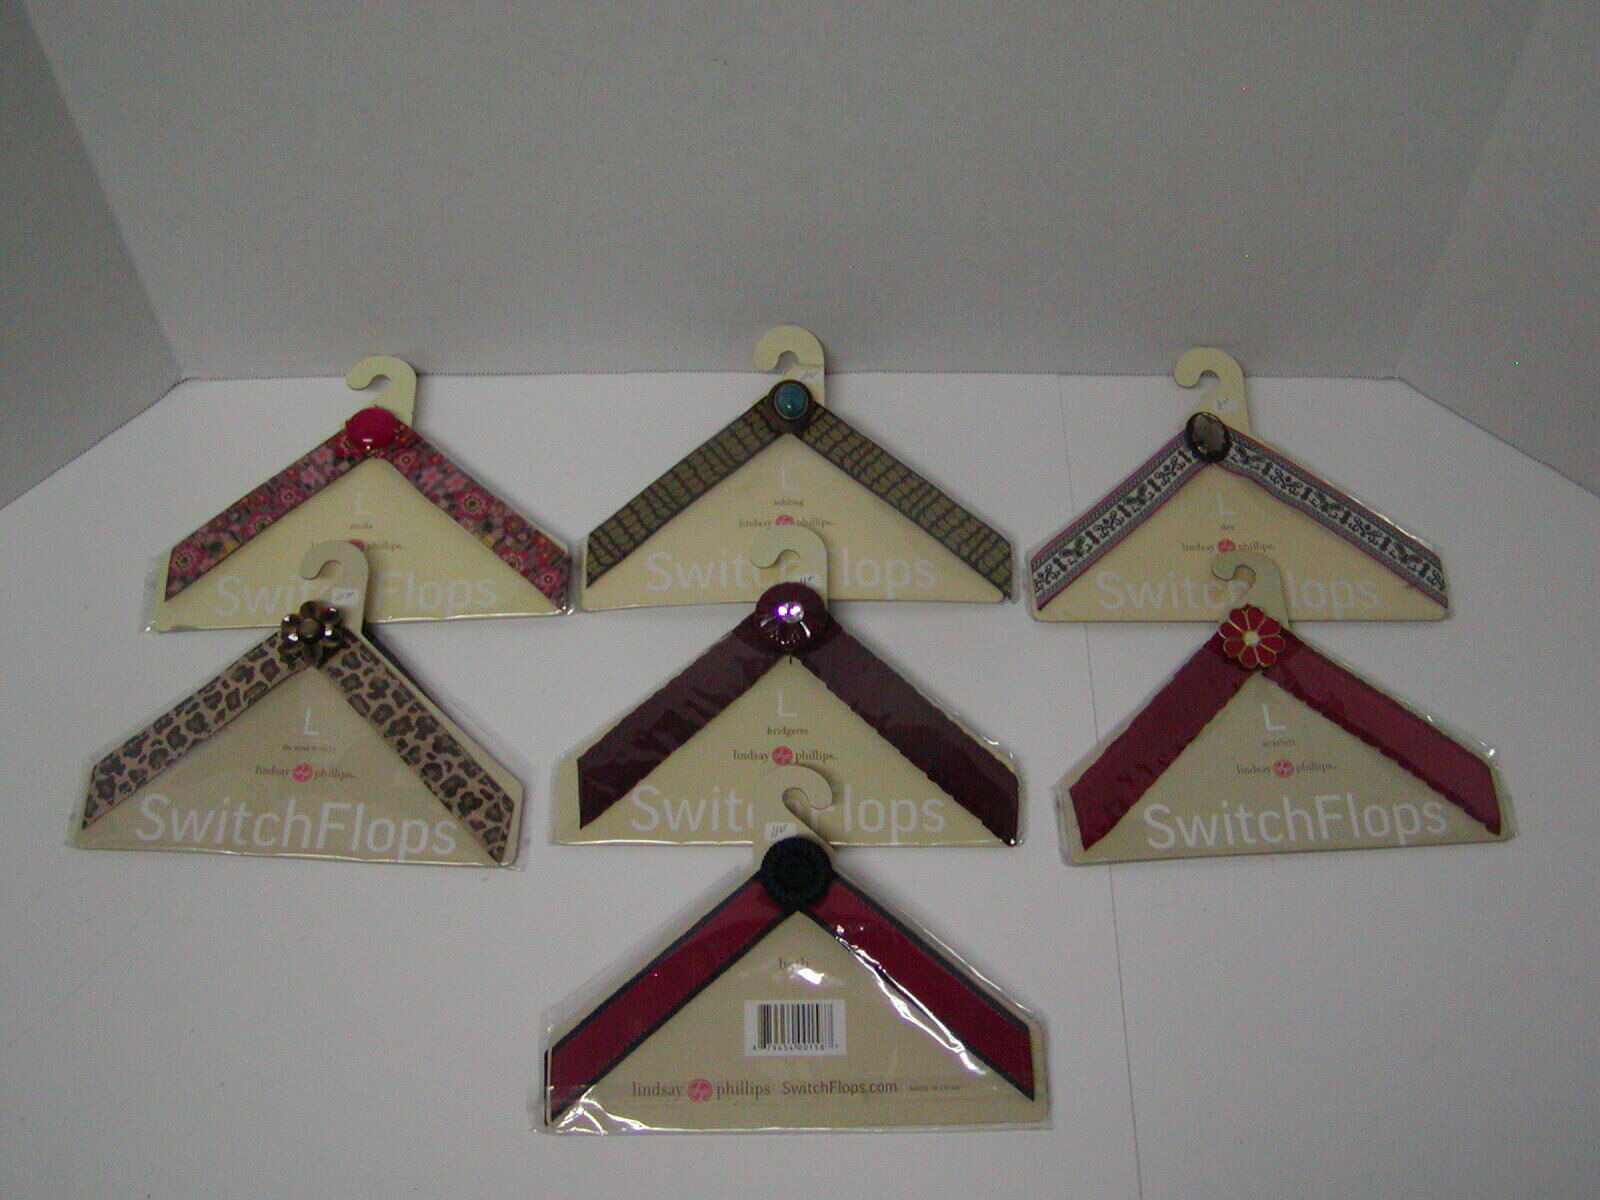 LOT OF 7 NEW LINDSAY PHILLIPS SIZE LARGE SWITCH FLOPS STRAPS